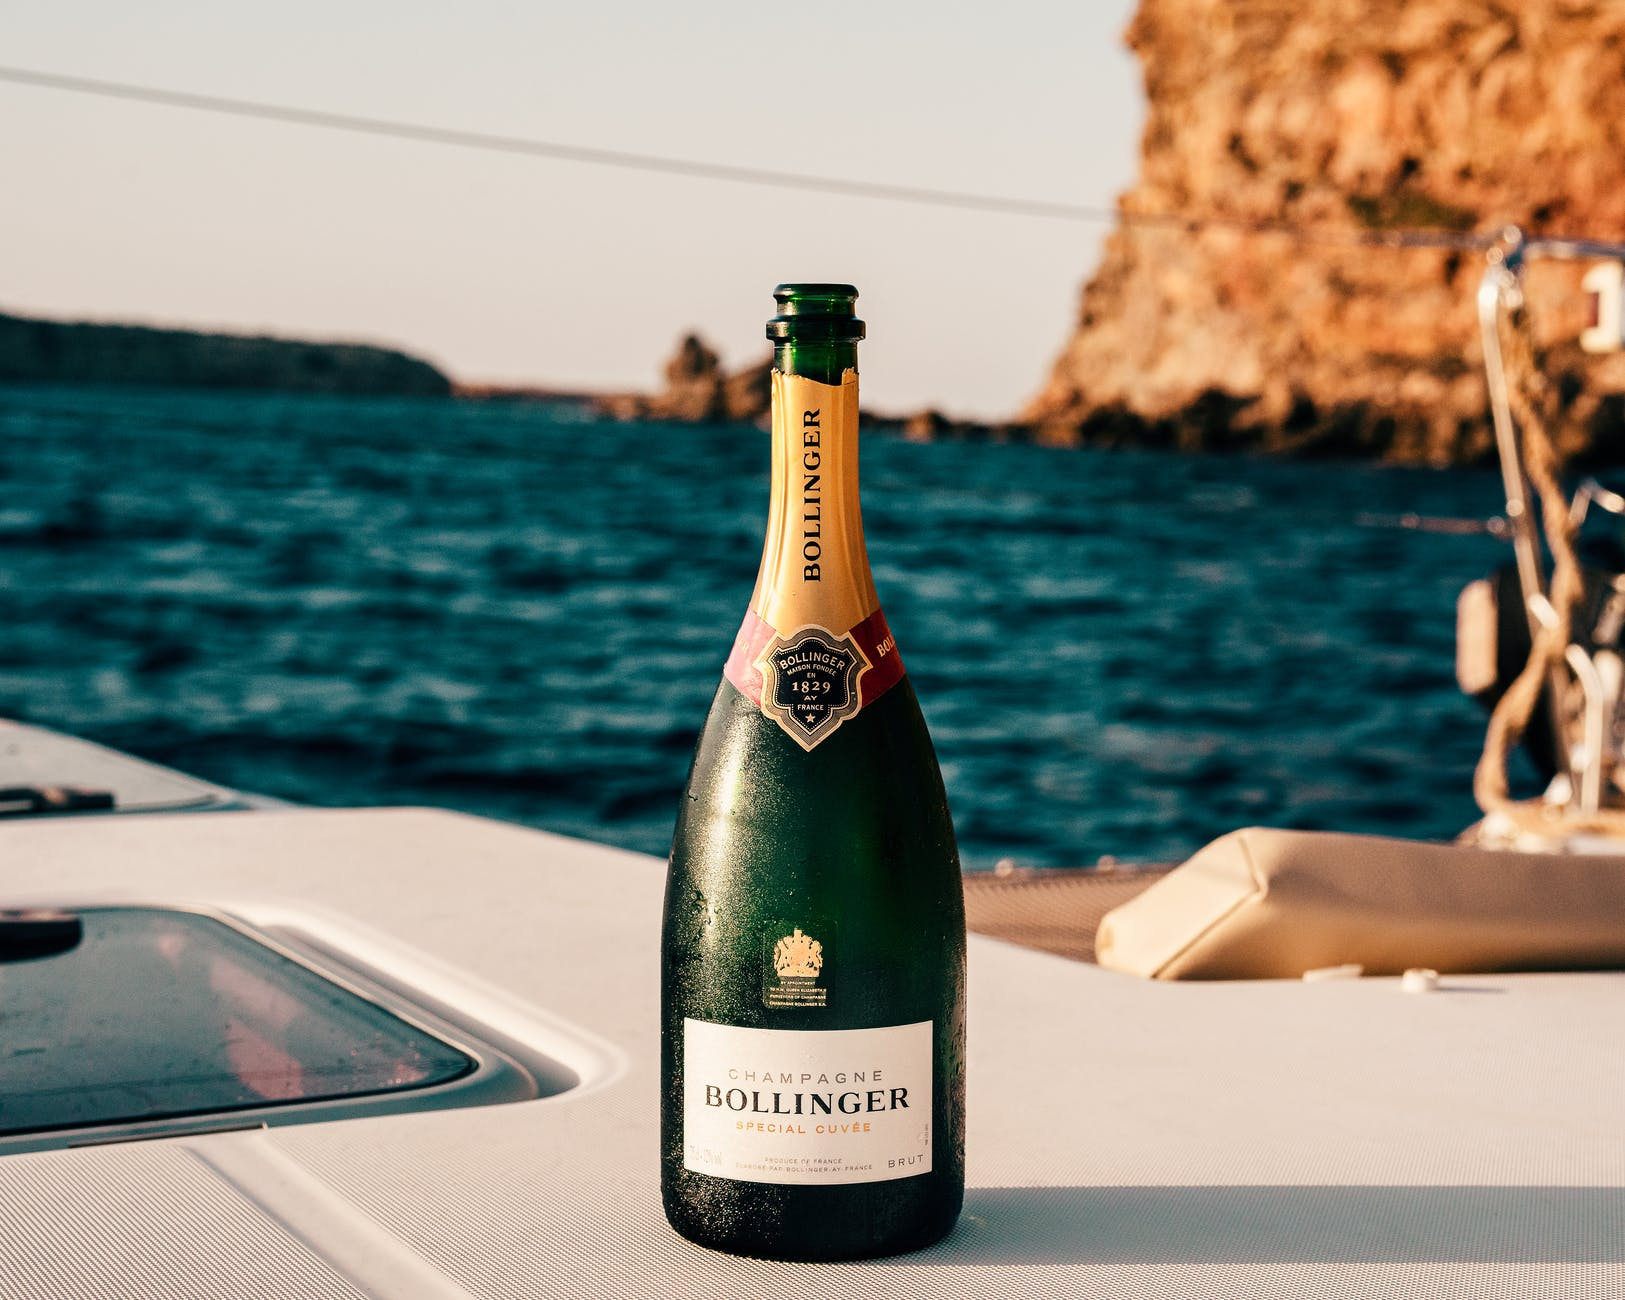 bollinger wine bottle on boat